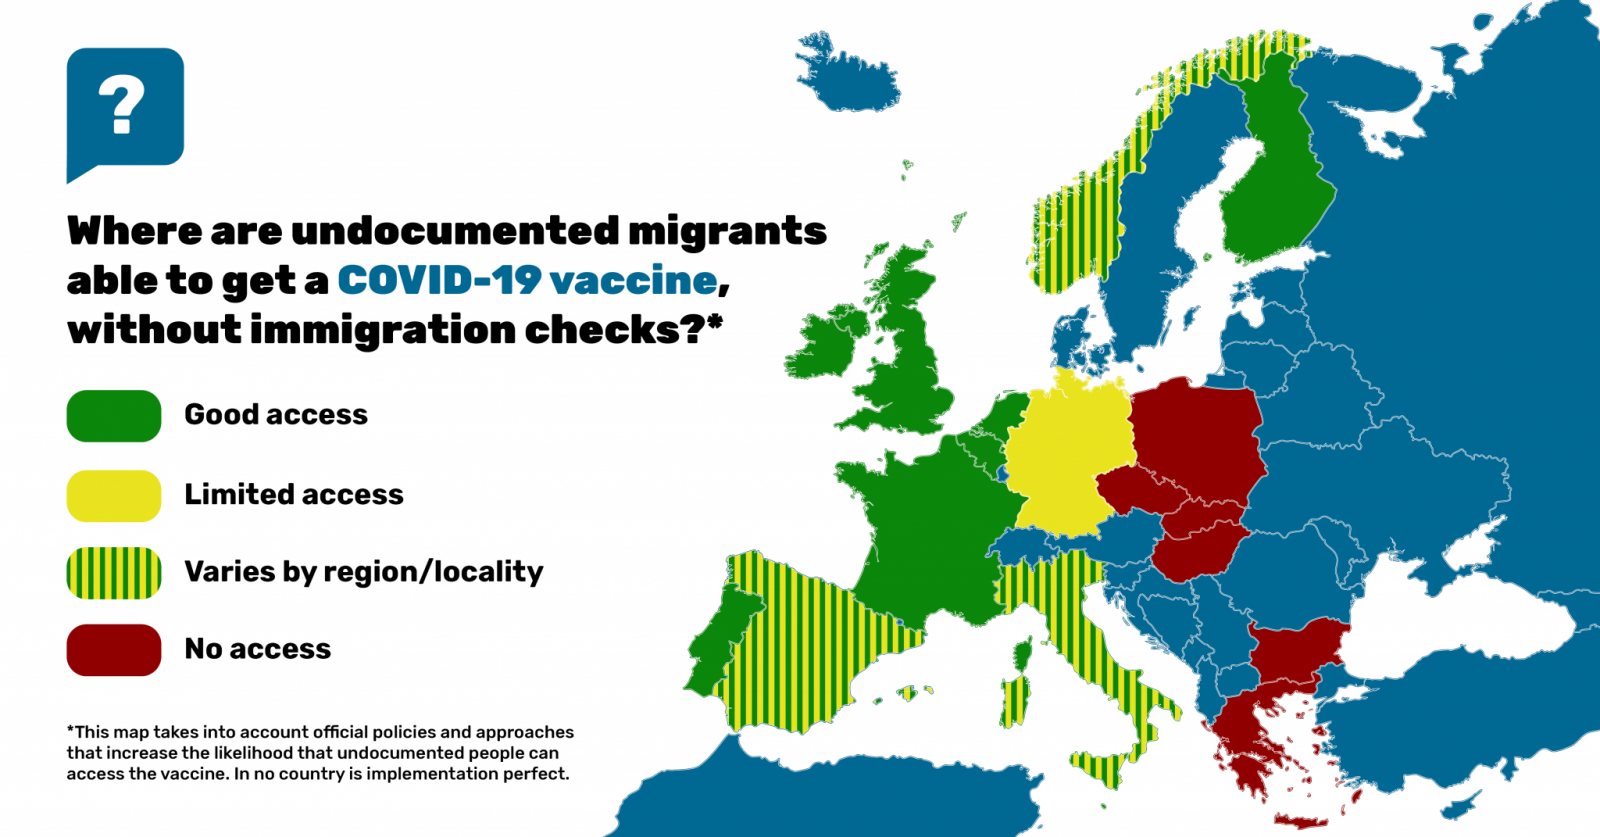 Map of Europe showing where undocumented migrants are able to get a COVID-19 vaccine, without immigration checks